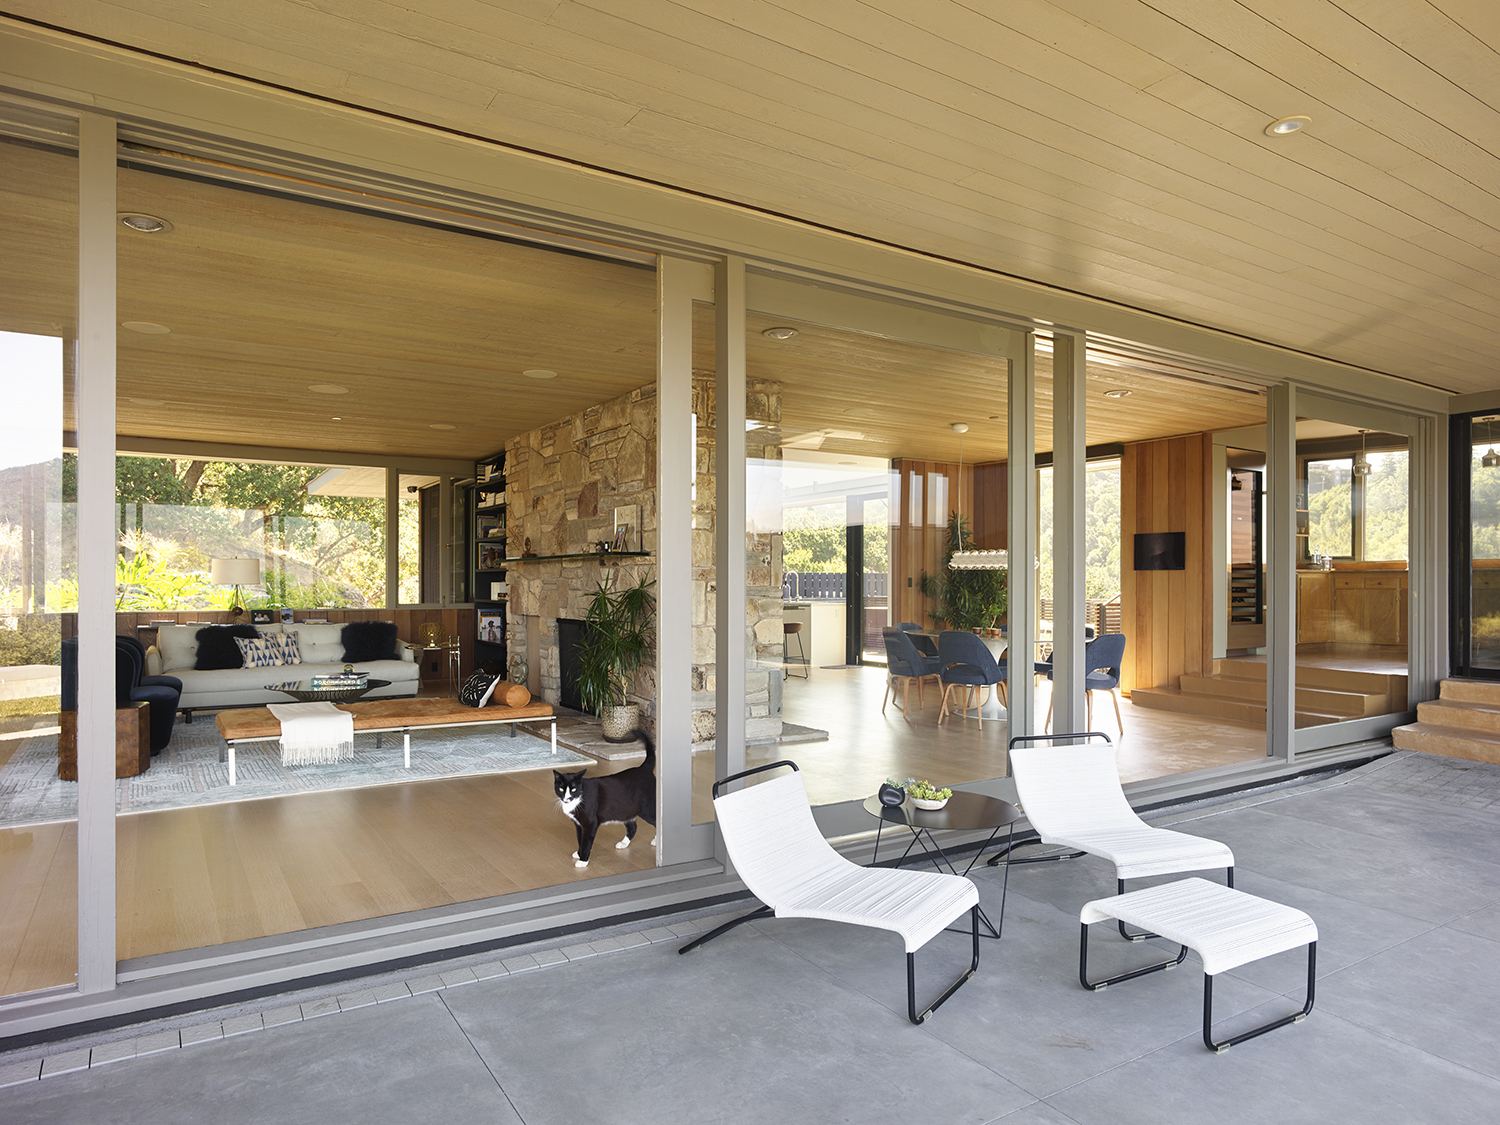 Herspring House renovated in Kentfield California, outside view of the living room and terrace